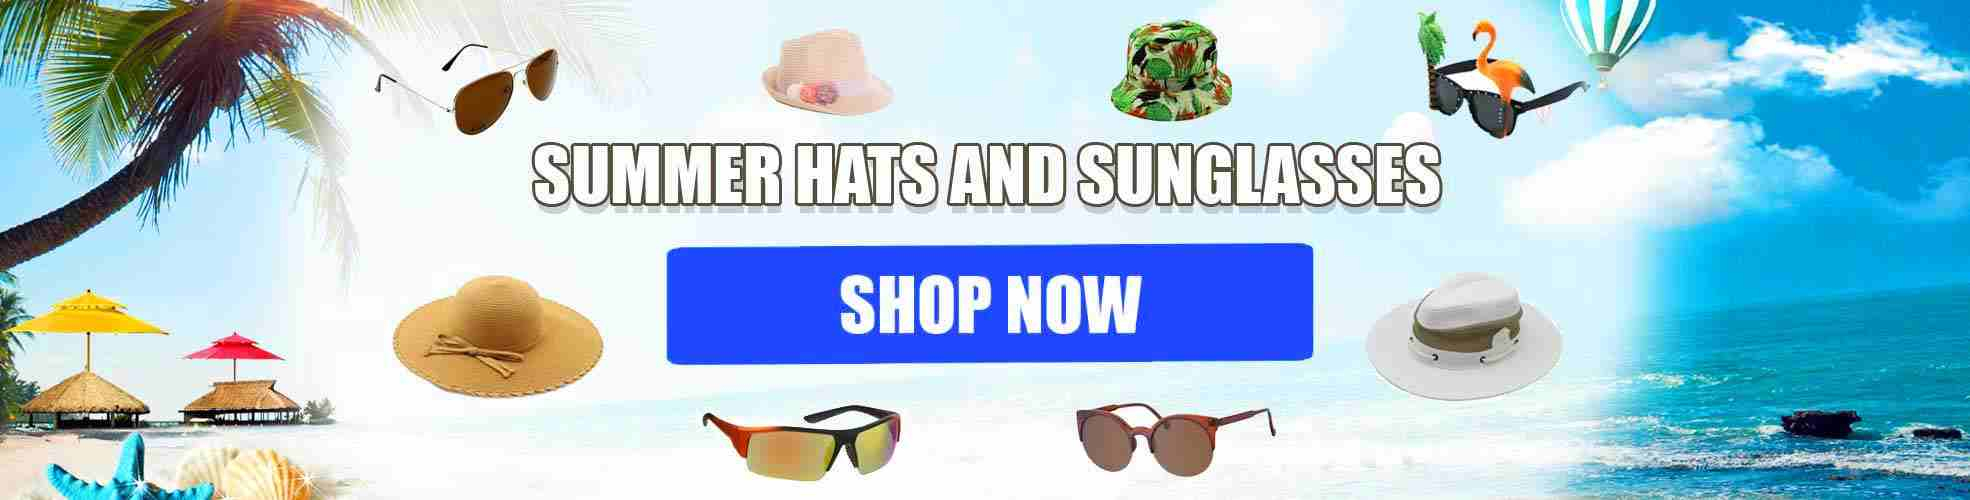 Apollo Wholesale is a wholesaler of summer hats, legionnaire hats, straw hats, sunglasses and other summer accessories. Buy now from trusted wholesaler.